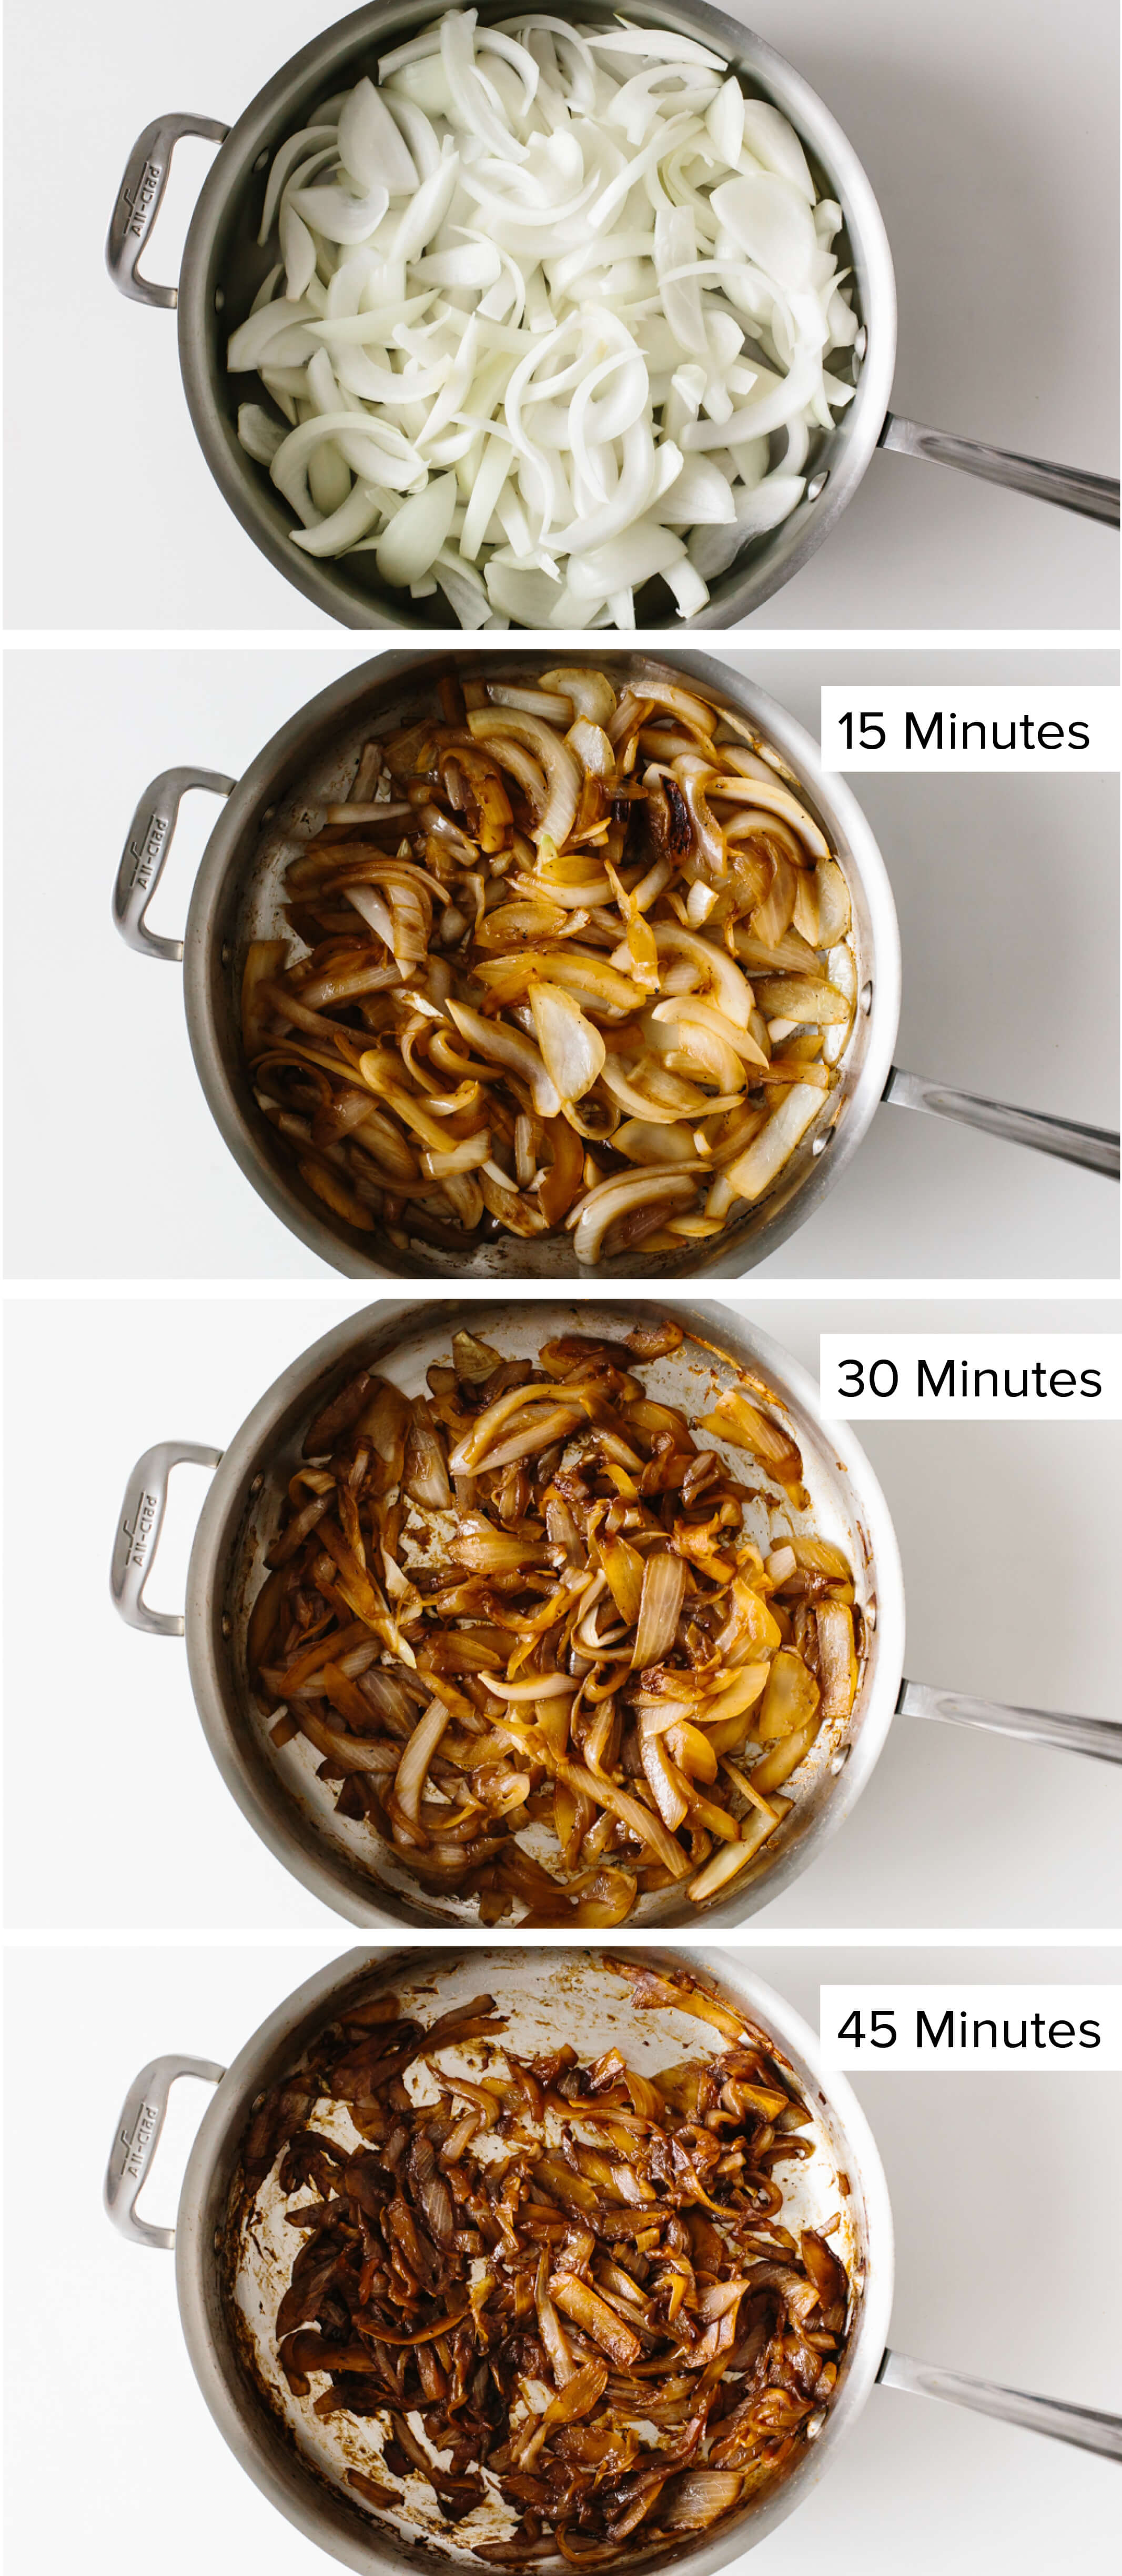 Step by step photos of making caramelized onions.